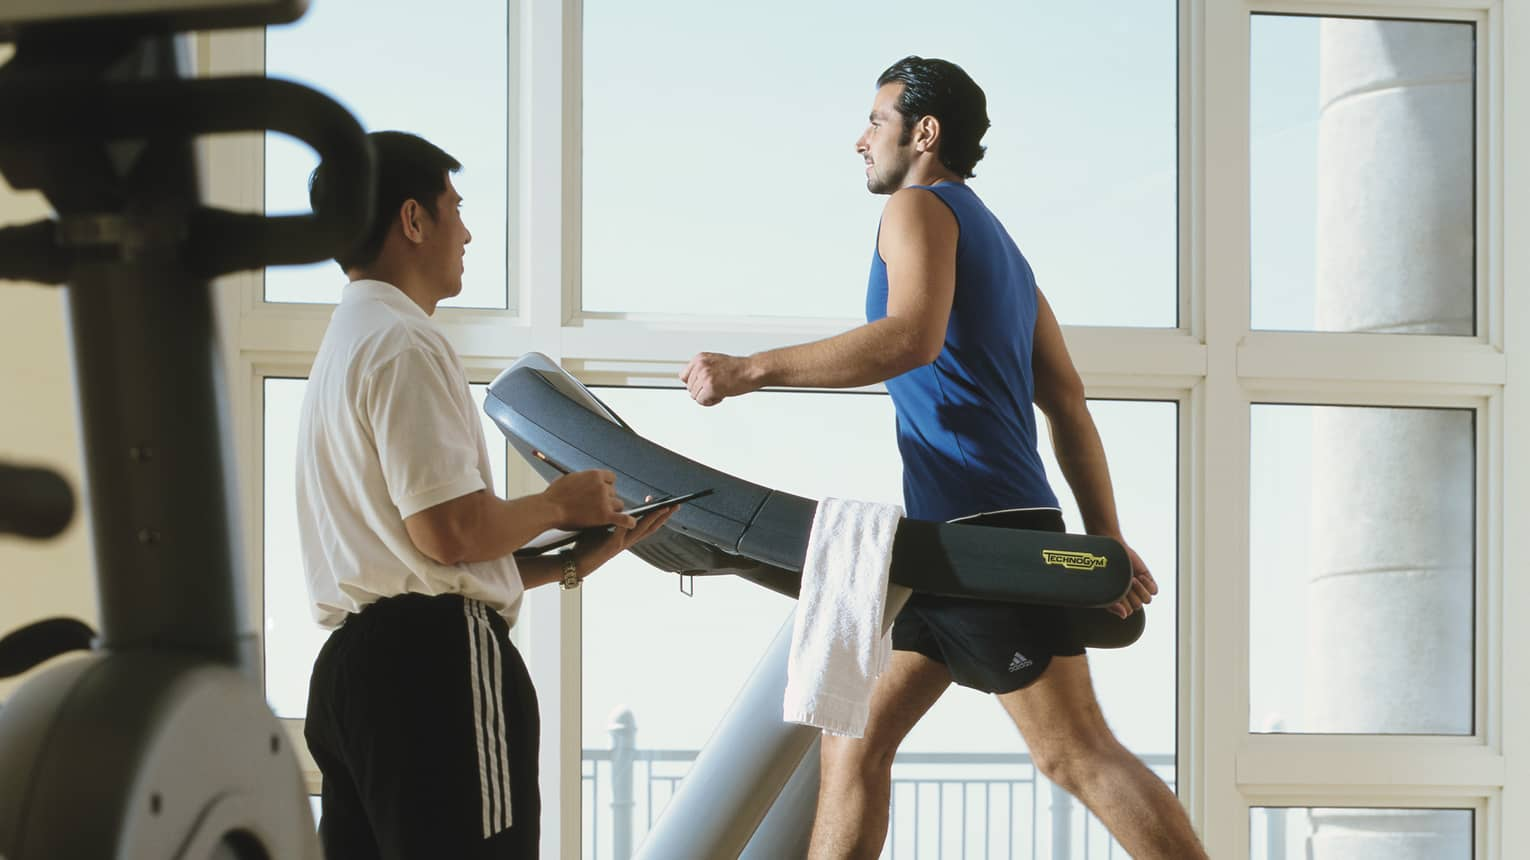 Man in workout gear on treadmill as personal trainer looks on